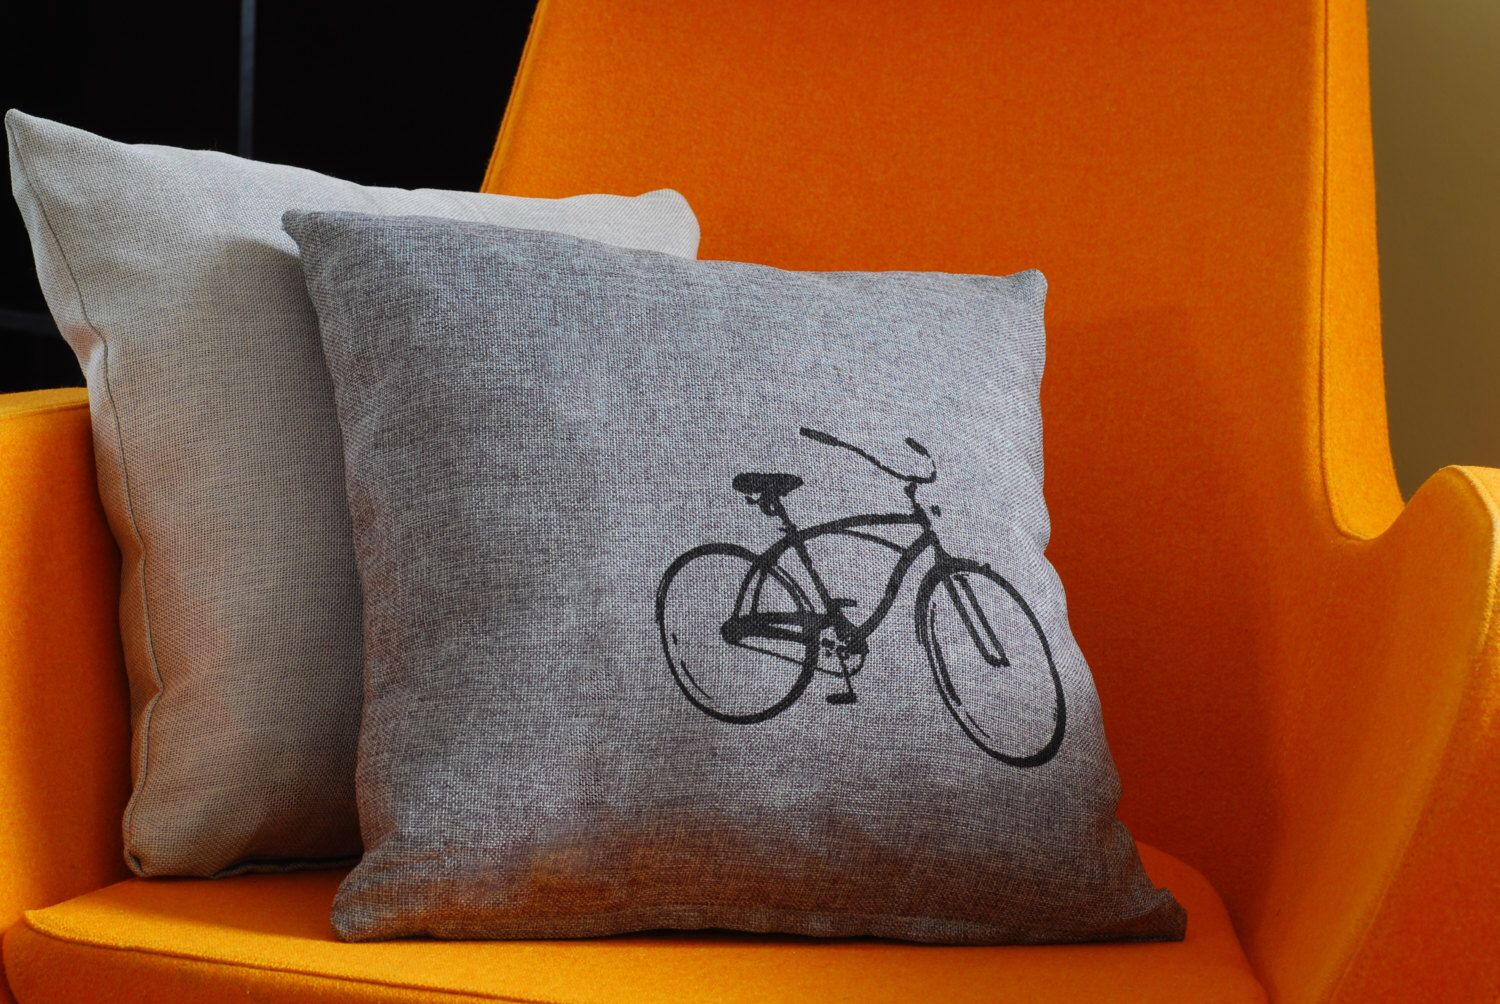 Vintage Bicycle Pillow Case ON SALE by AMorbidTale on Etsy https://www.etsy.com/listing/130602175/vintage-bicycle-pillow-case-on-sale